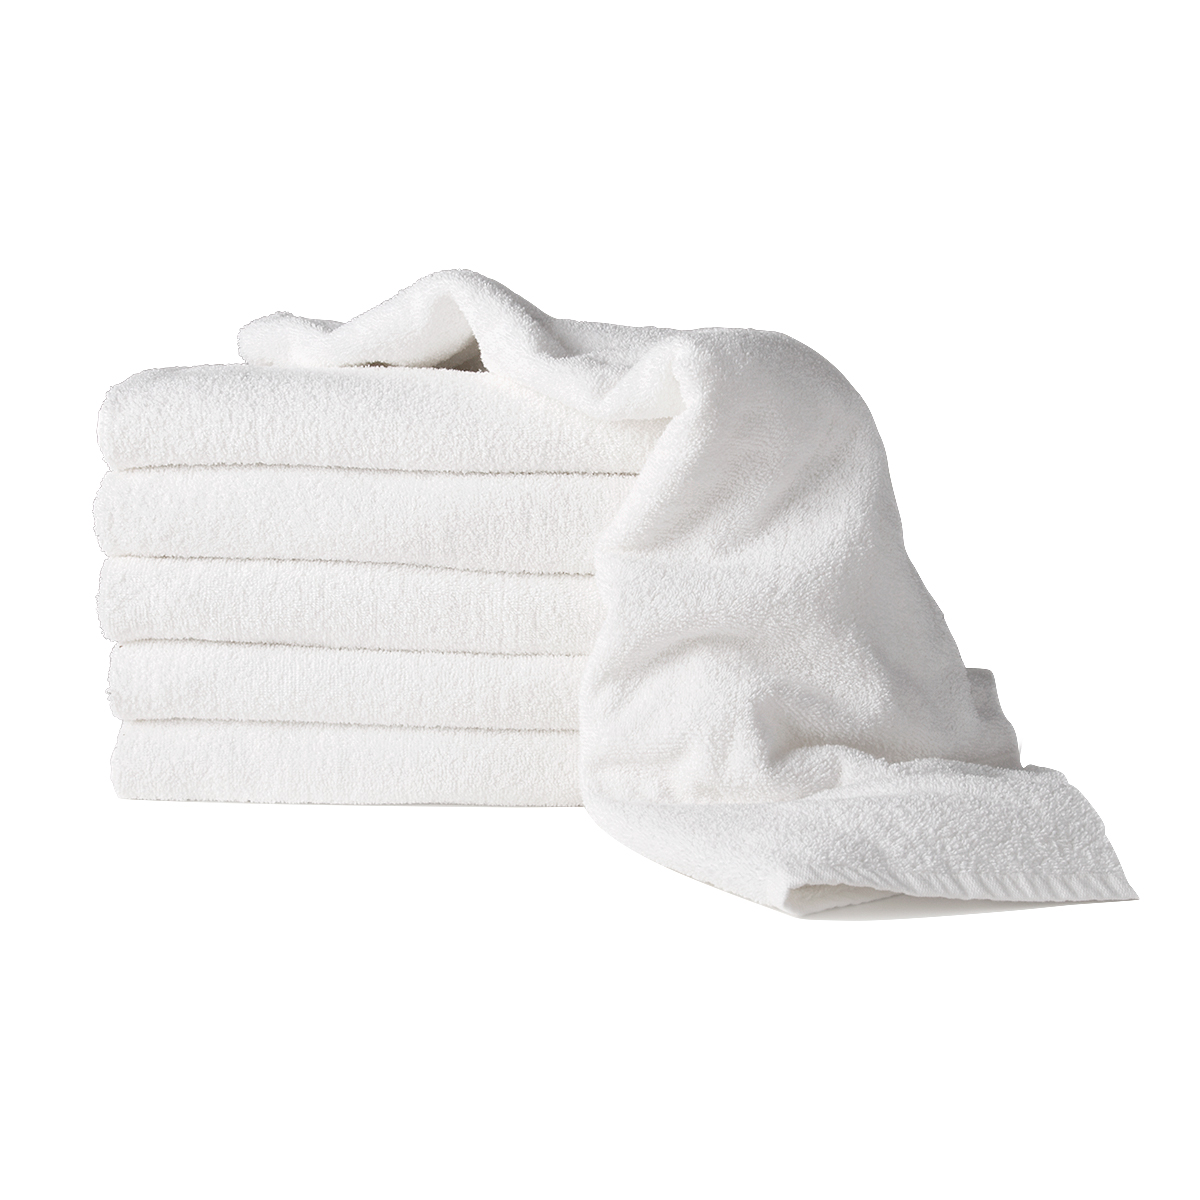 White Spa 100 Percent Cotton Towels Supreme alternative product image 2